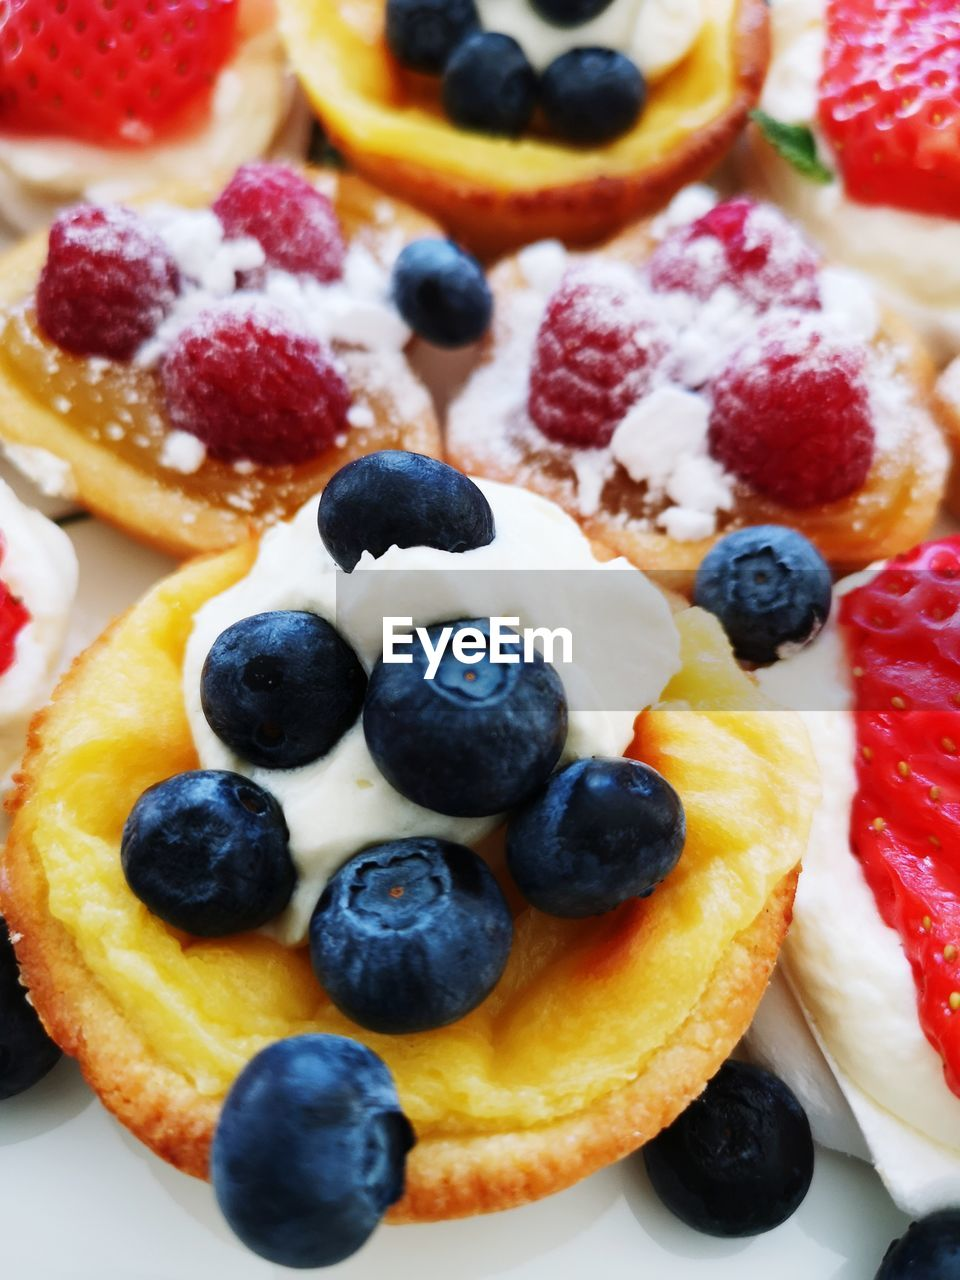 food, food and drink, fruit, berry fruit, blueberry, freshness, healthy eating, sweet, sweet food, close-up, still life, indulgence, dessert, ready-to-eat, temptation, indoors, raspberry, no people, cake, wellbeing, breakfast, meal, tart - dessert, garnish